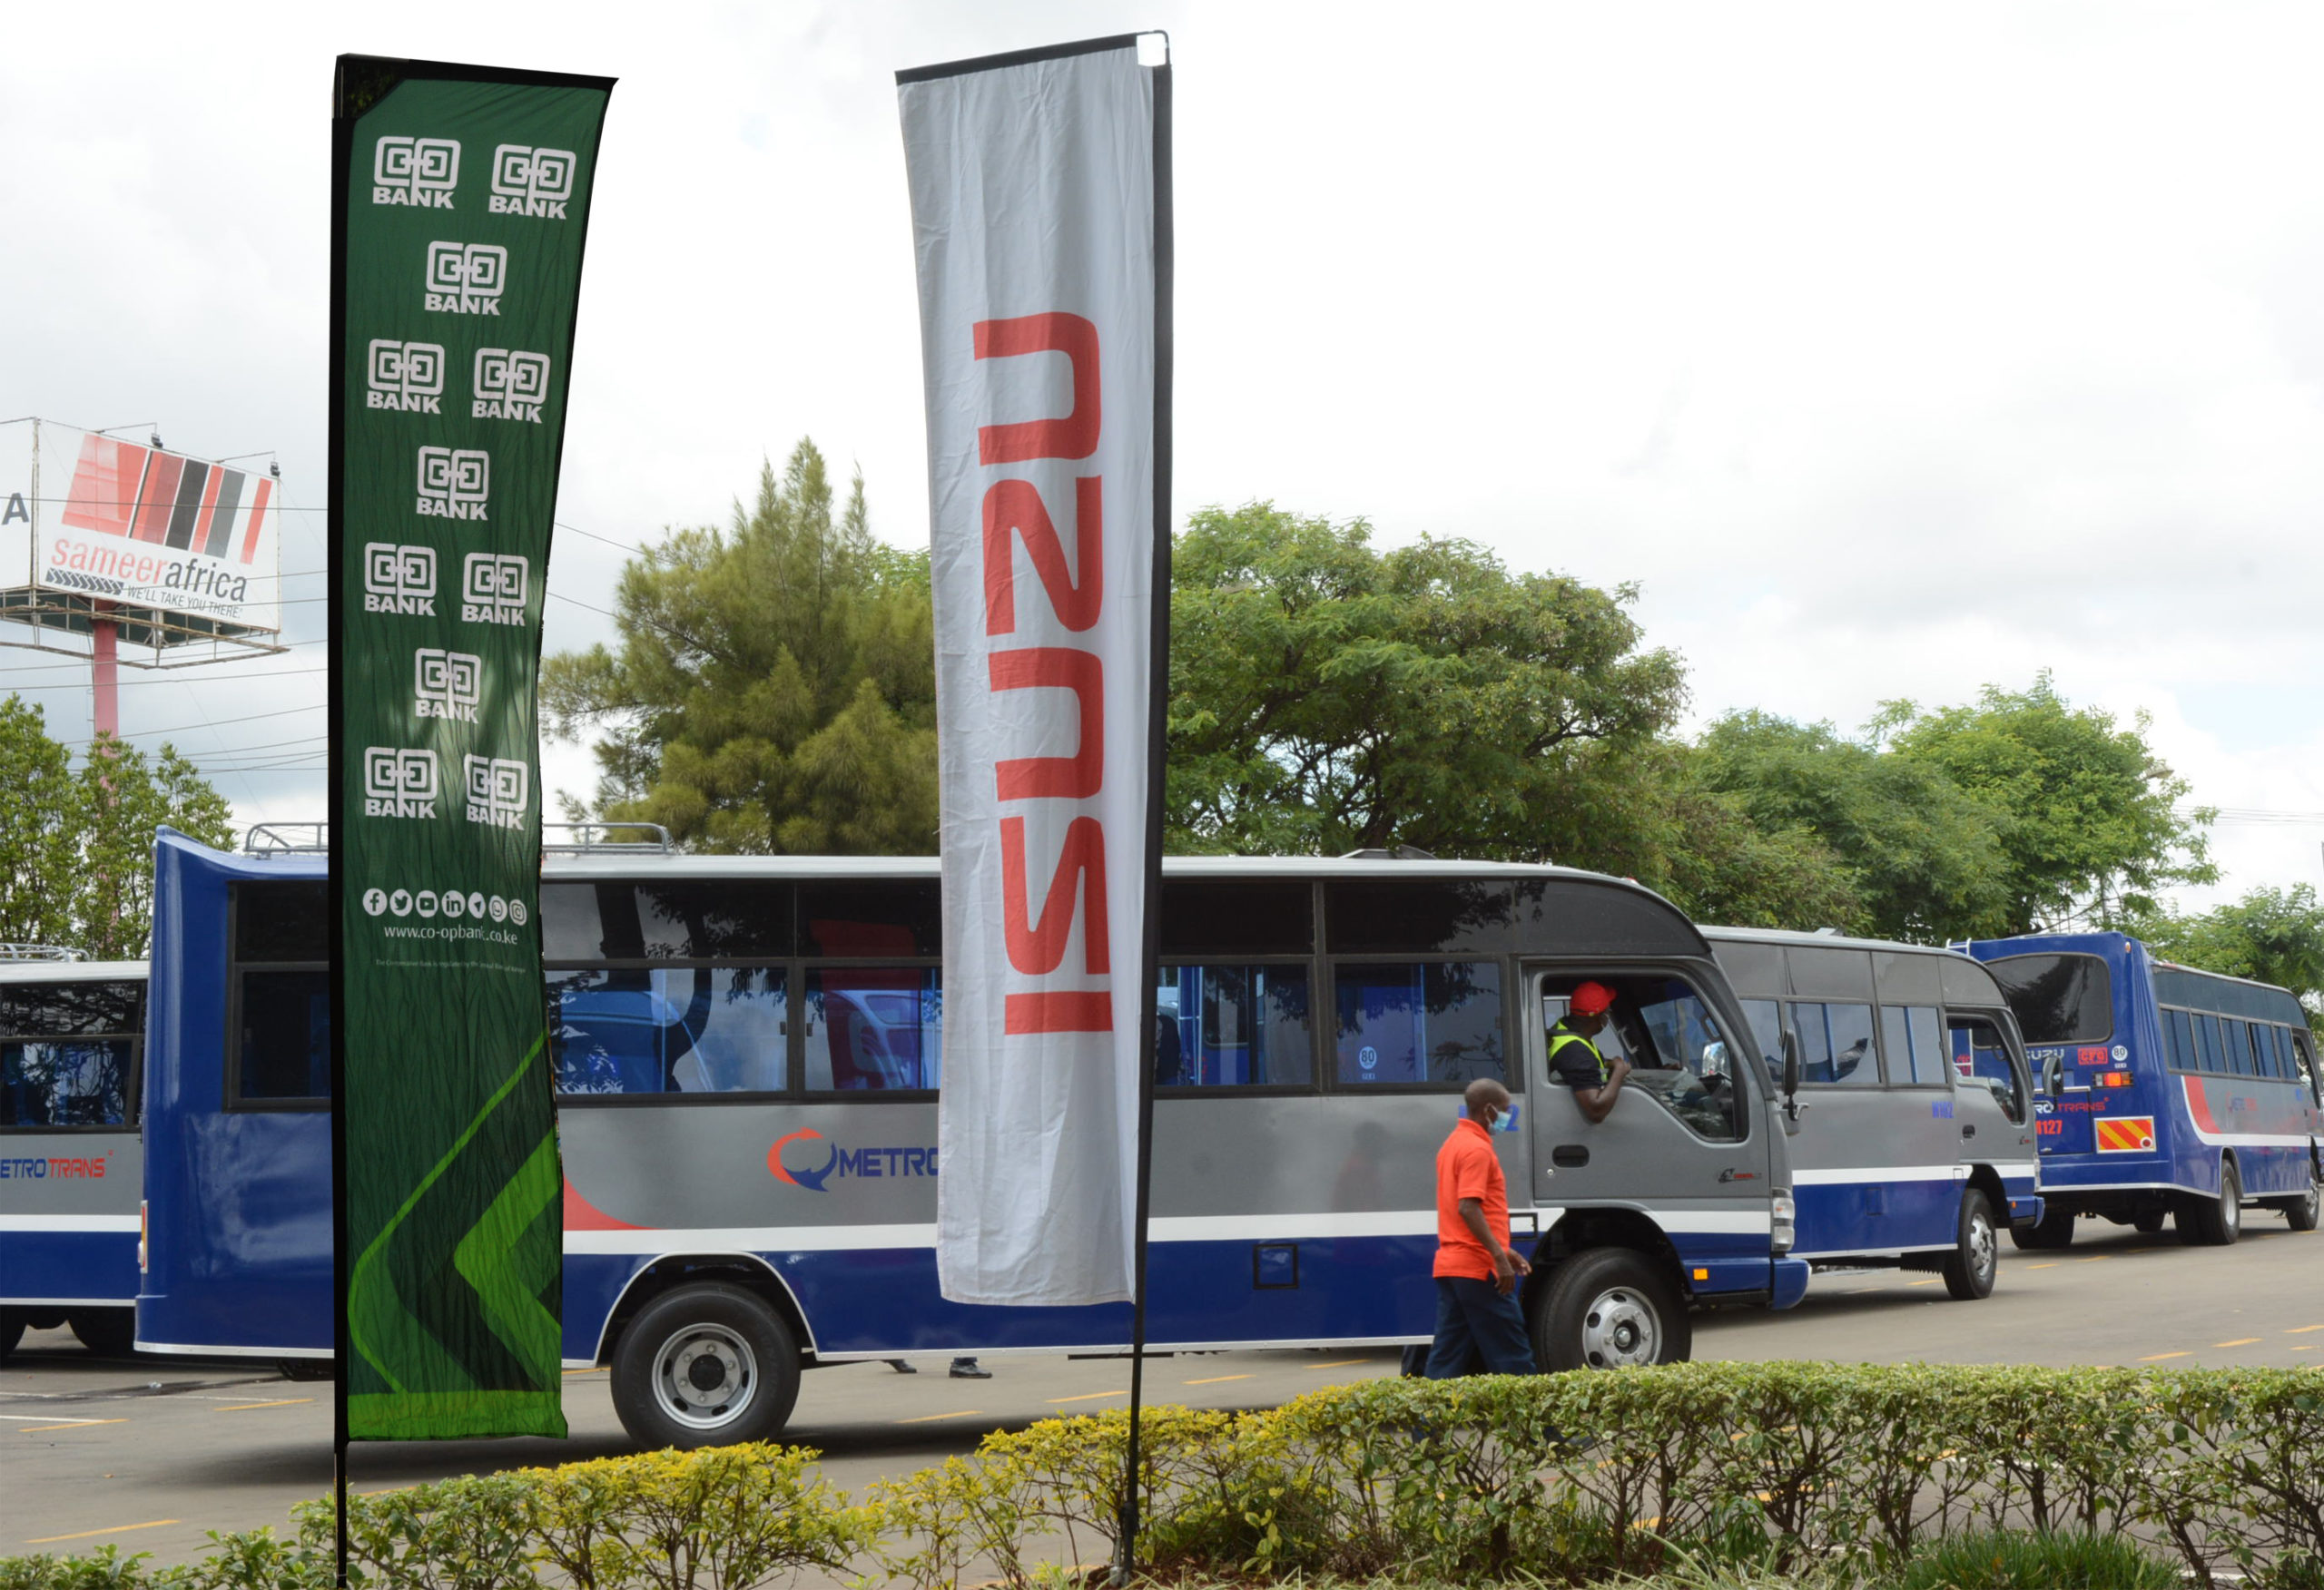 MetroTrans Sacco acquires 45 brand new buses in a financing deal with Co-op Bank